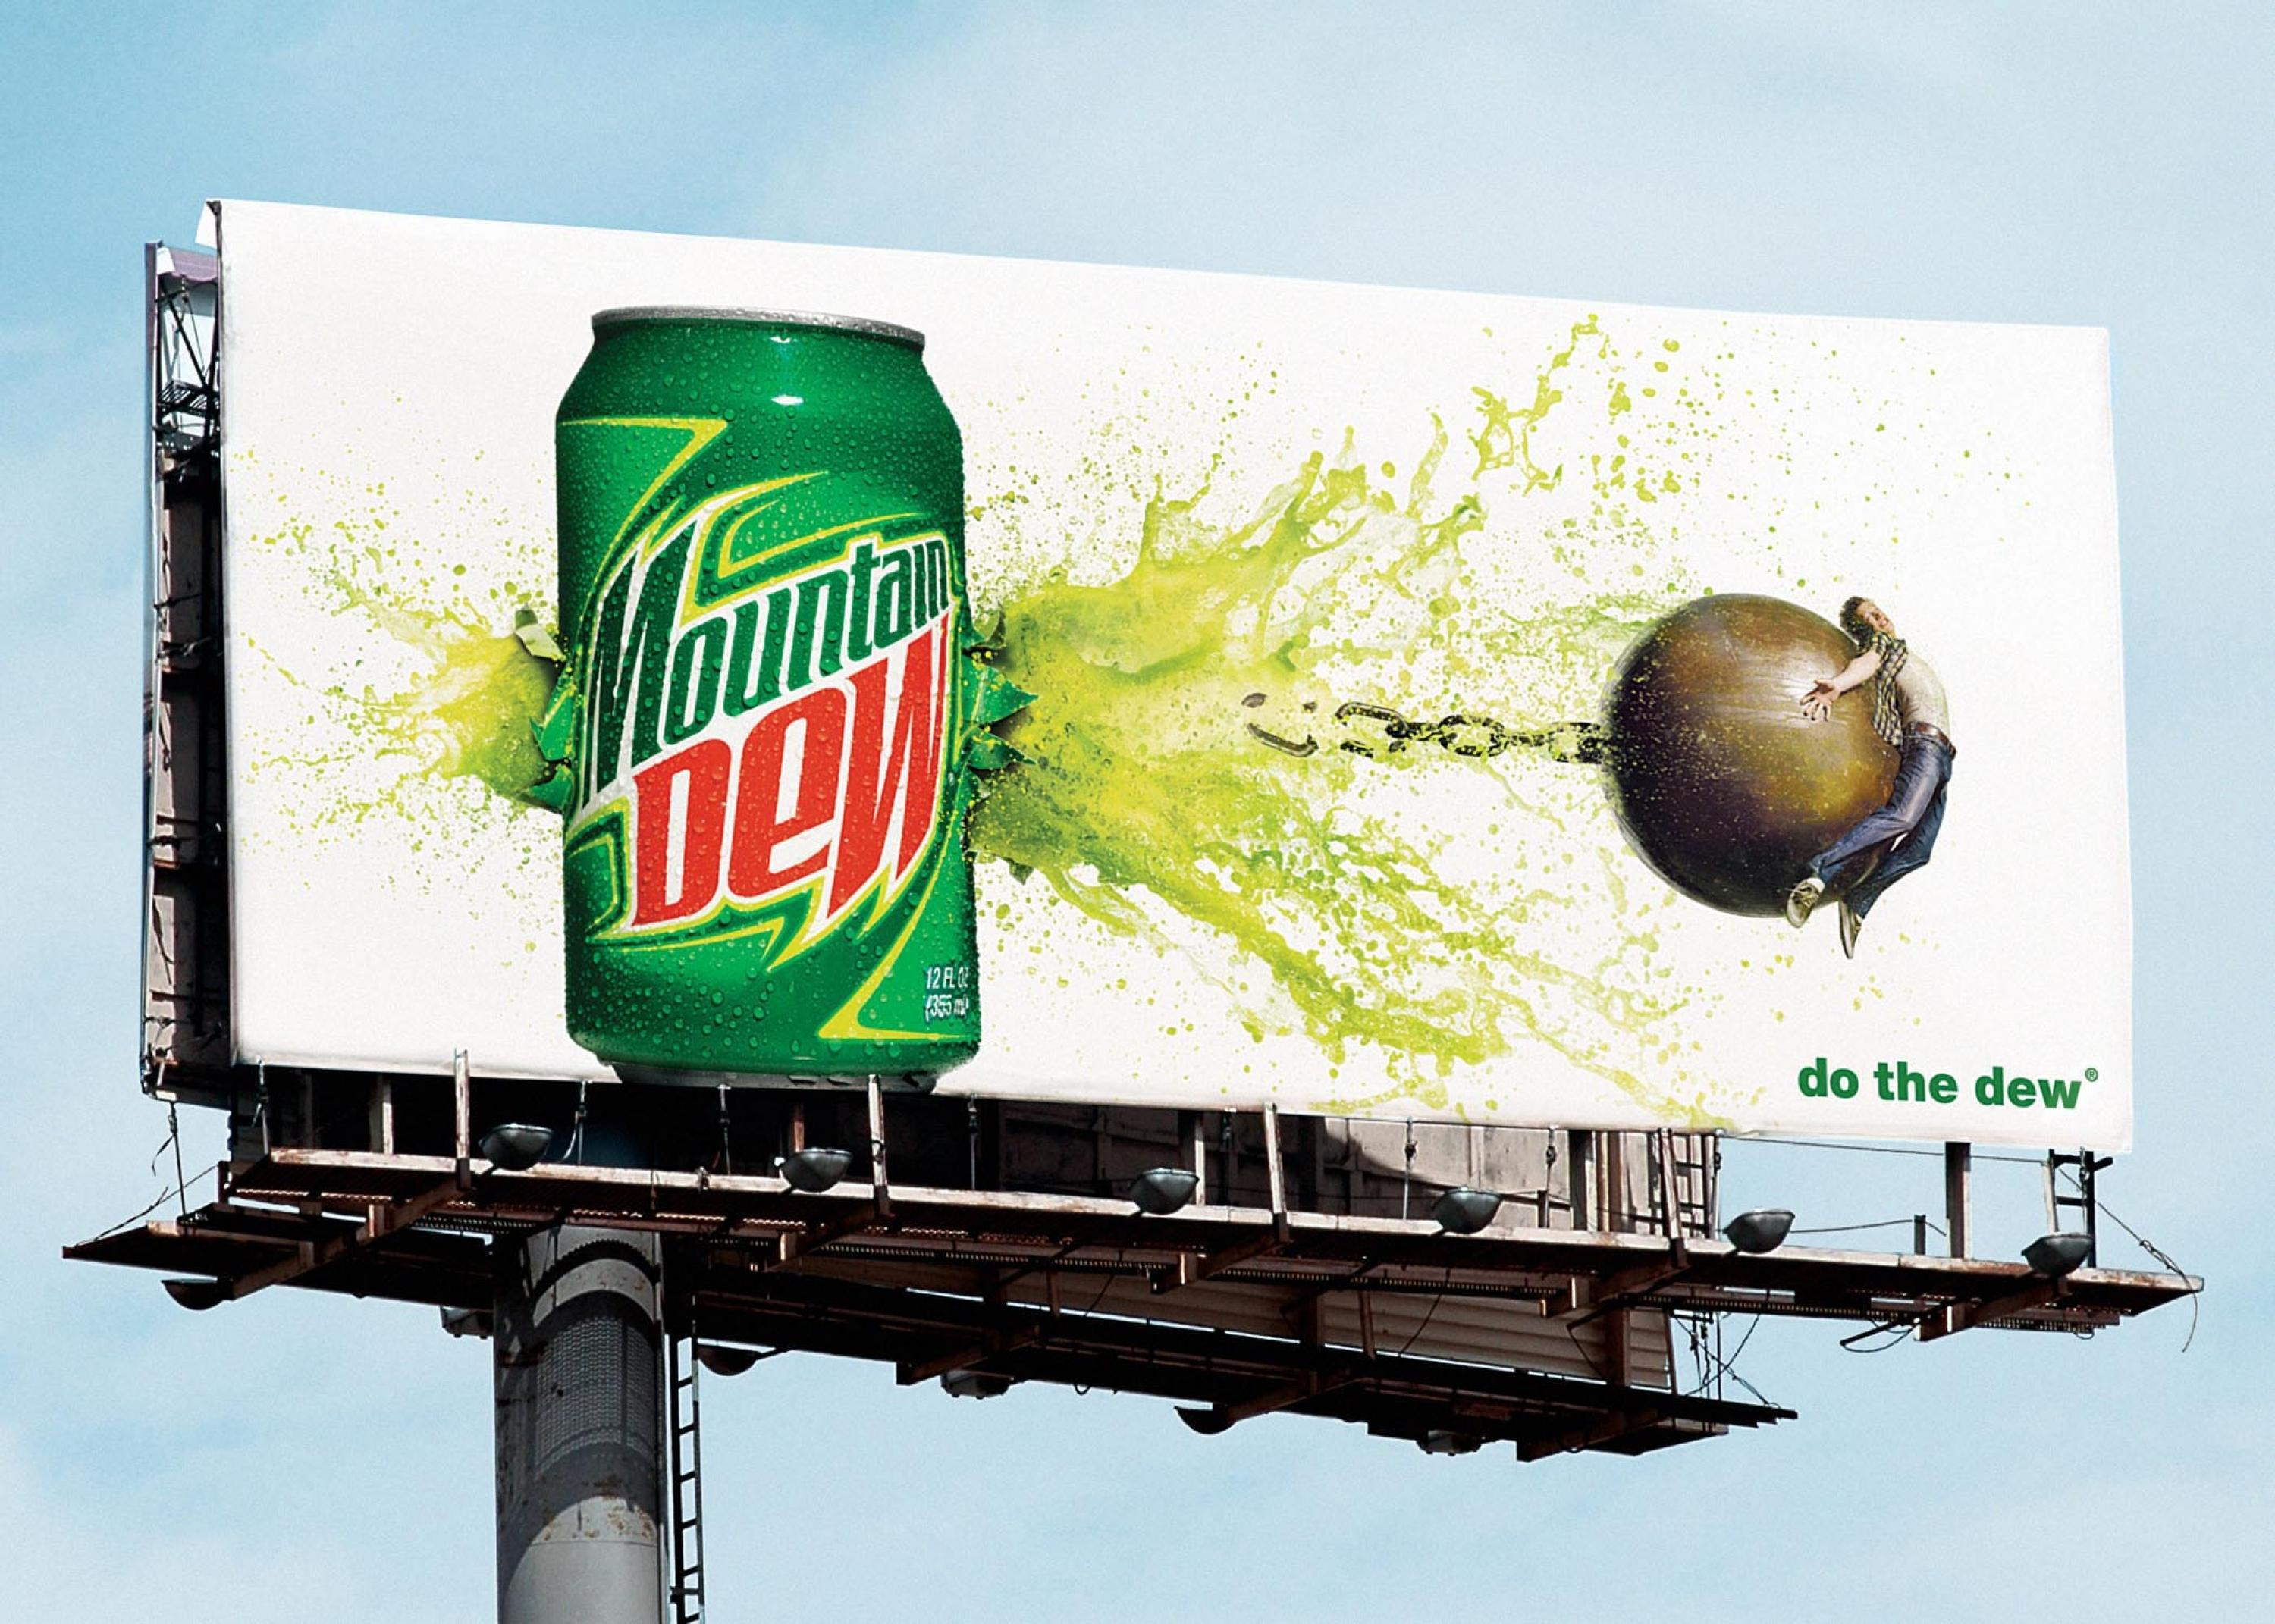 mountain dew is the brand of pepsi marketing essay While mountain dew has traditional taken a back seat to the pepsi brand, dew's creative and exciting commercials have struck a chord with consumers the selected ads will resonate with our target audience, 18 year old males.